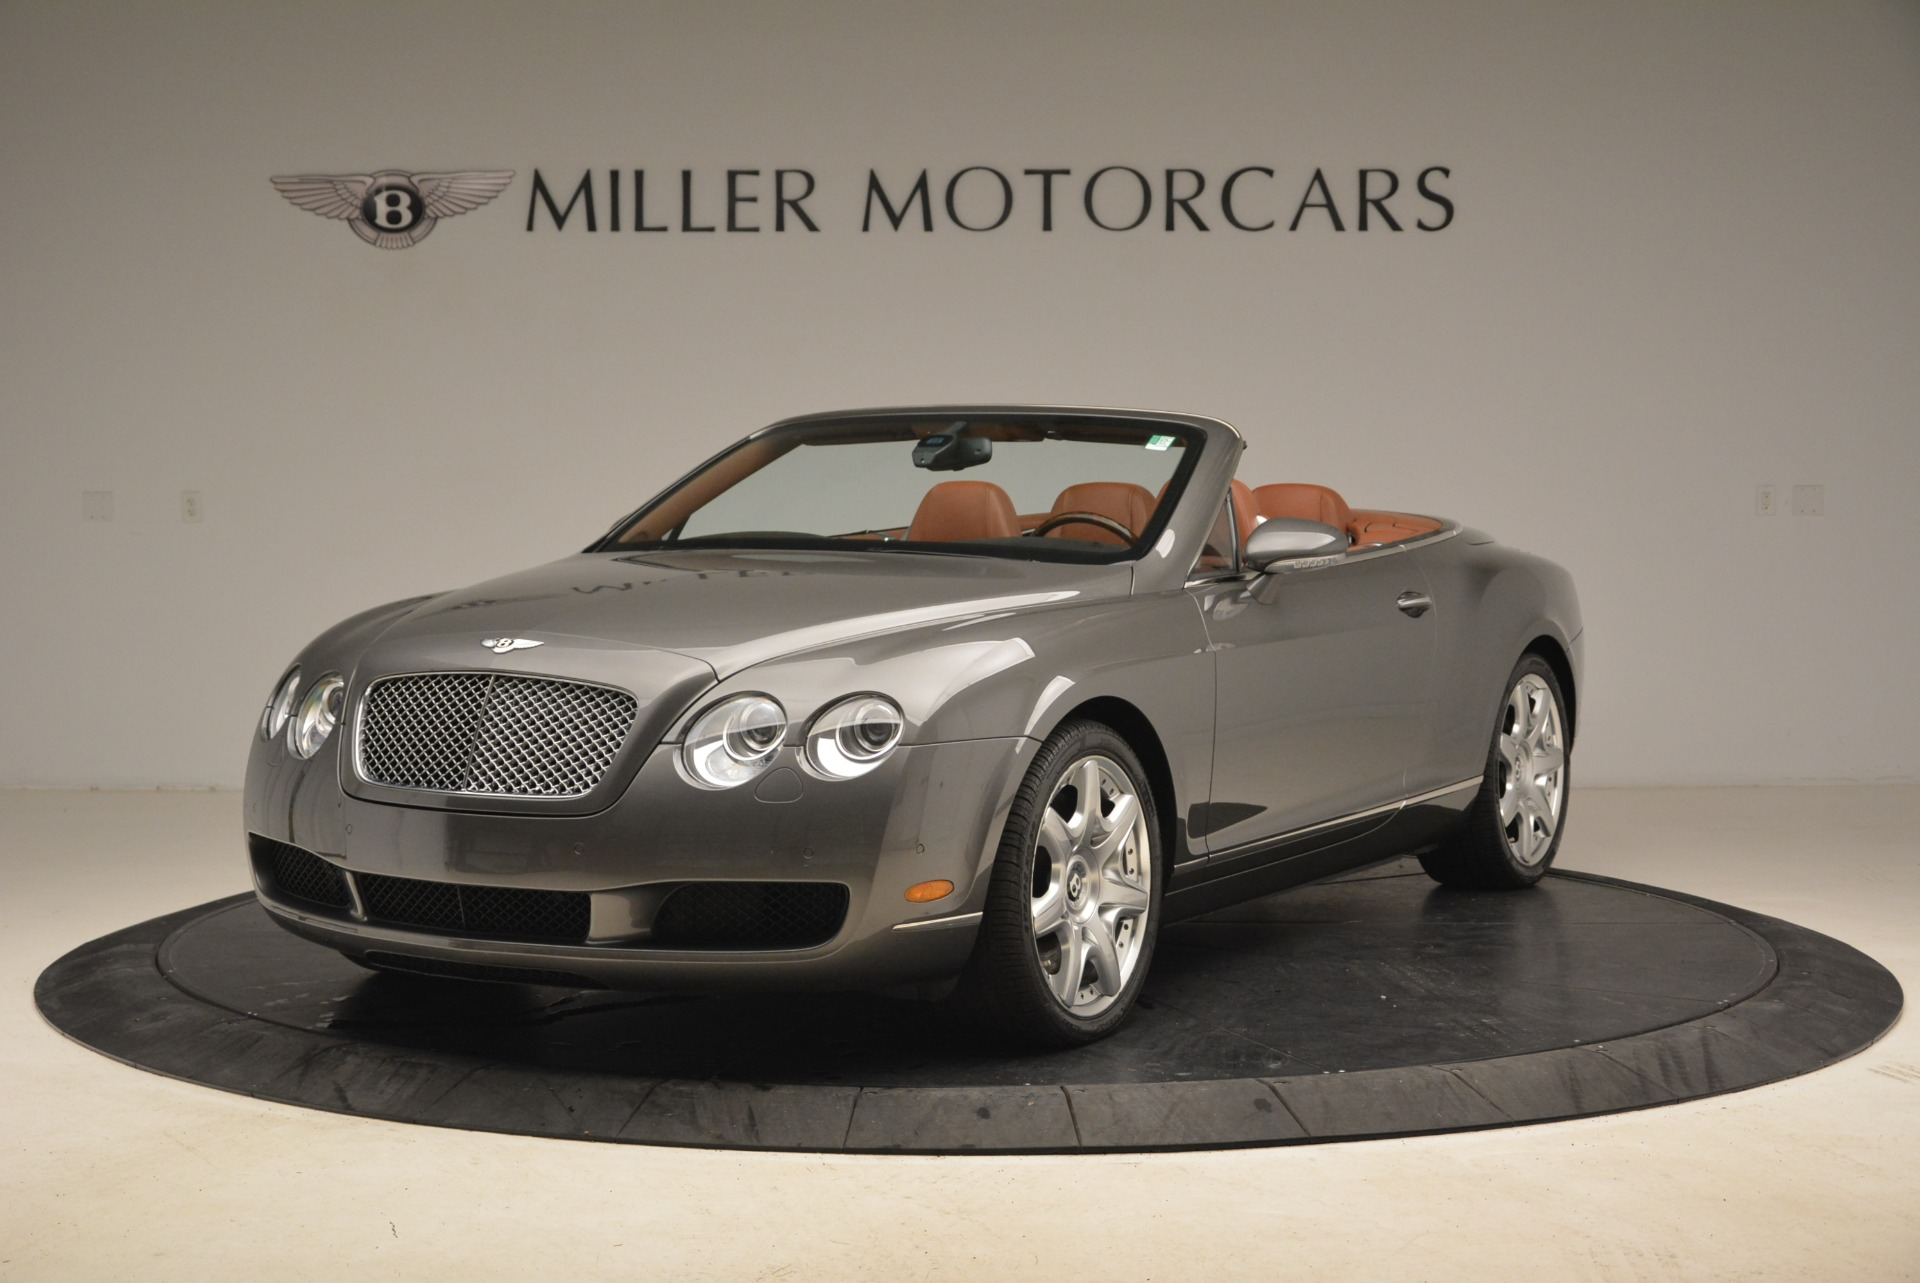 Used 2008 Bentley Continental GT W12 for sale Sold at Bentley Greenwich in Greenwich CT 06830 1